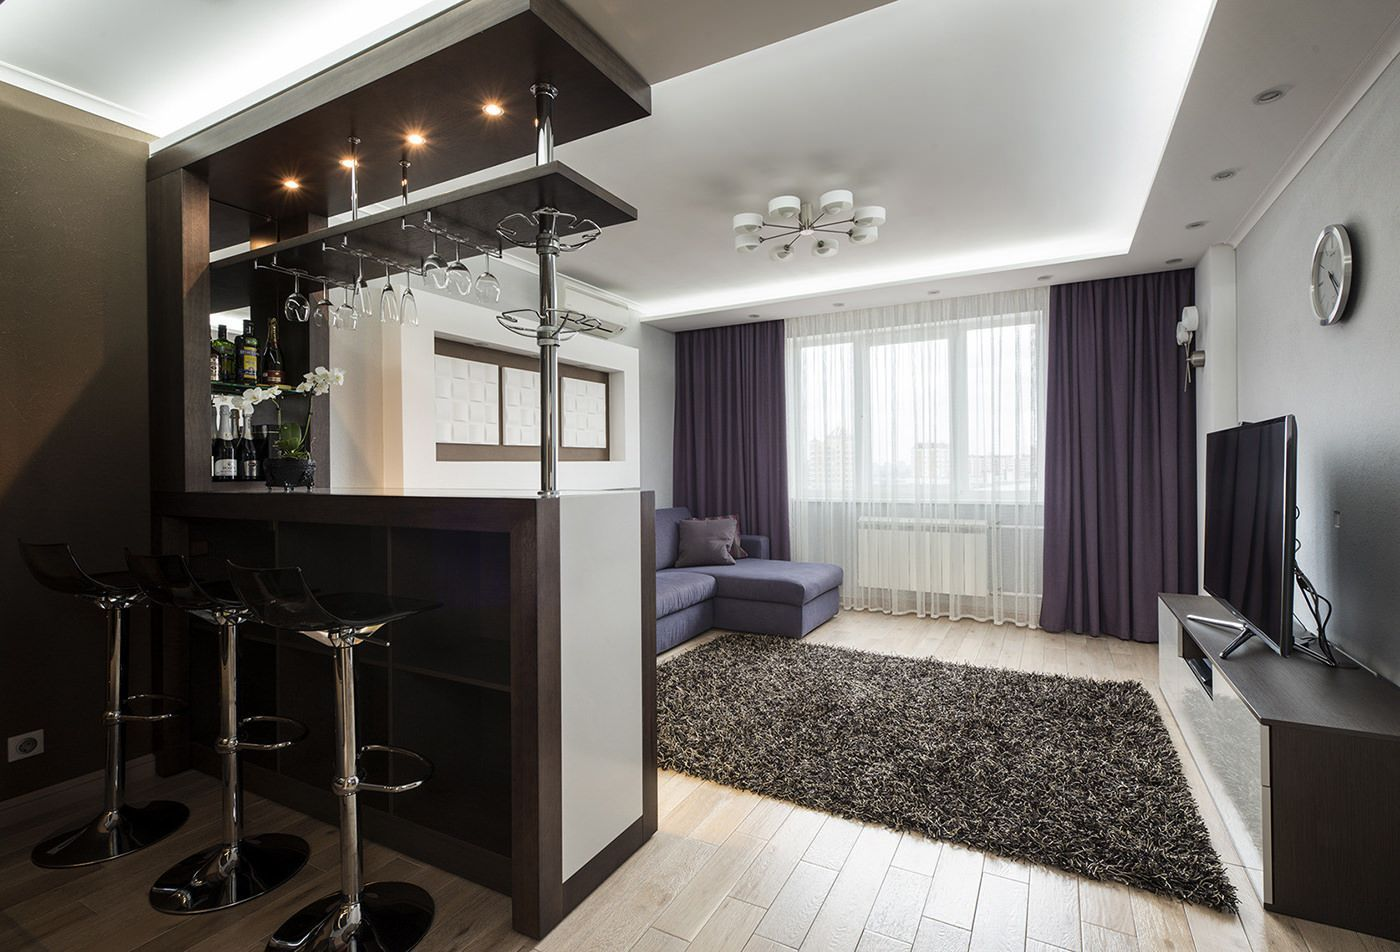 Living room zoned from kitchen with two-tier bar counter